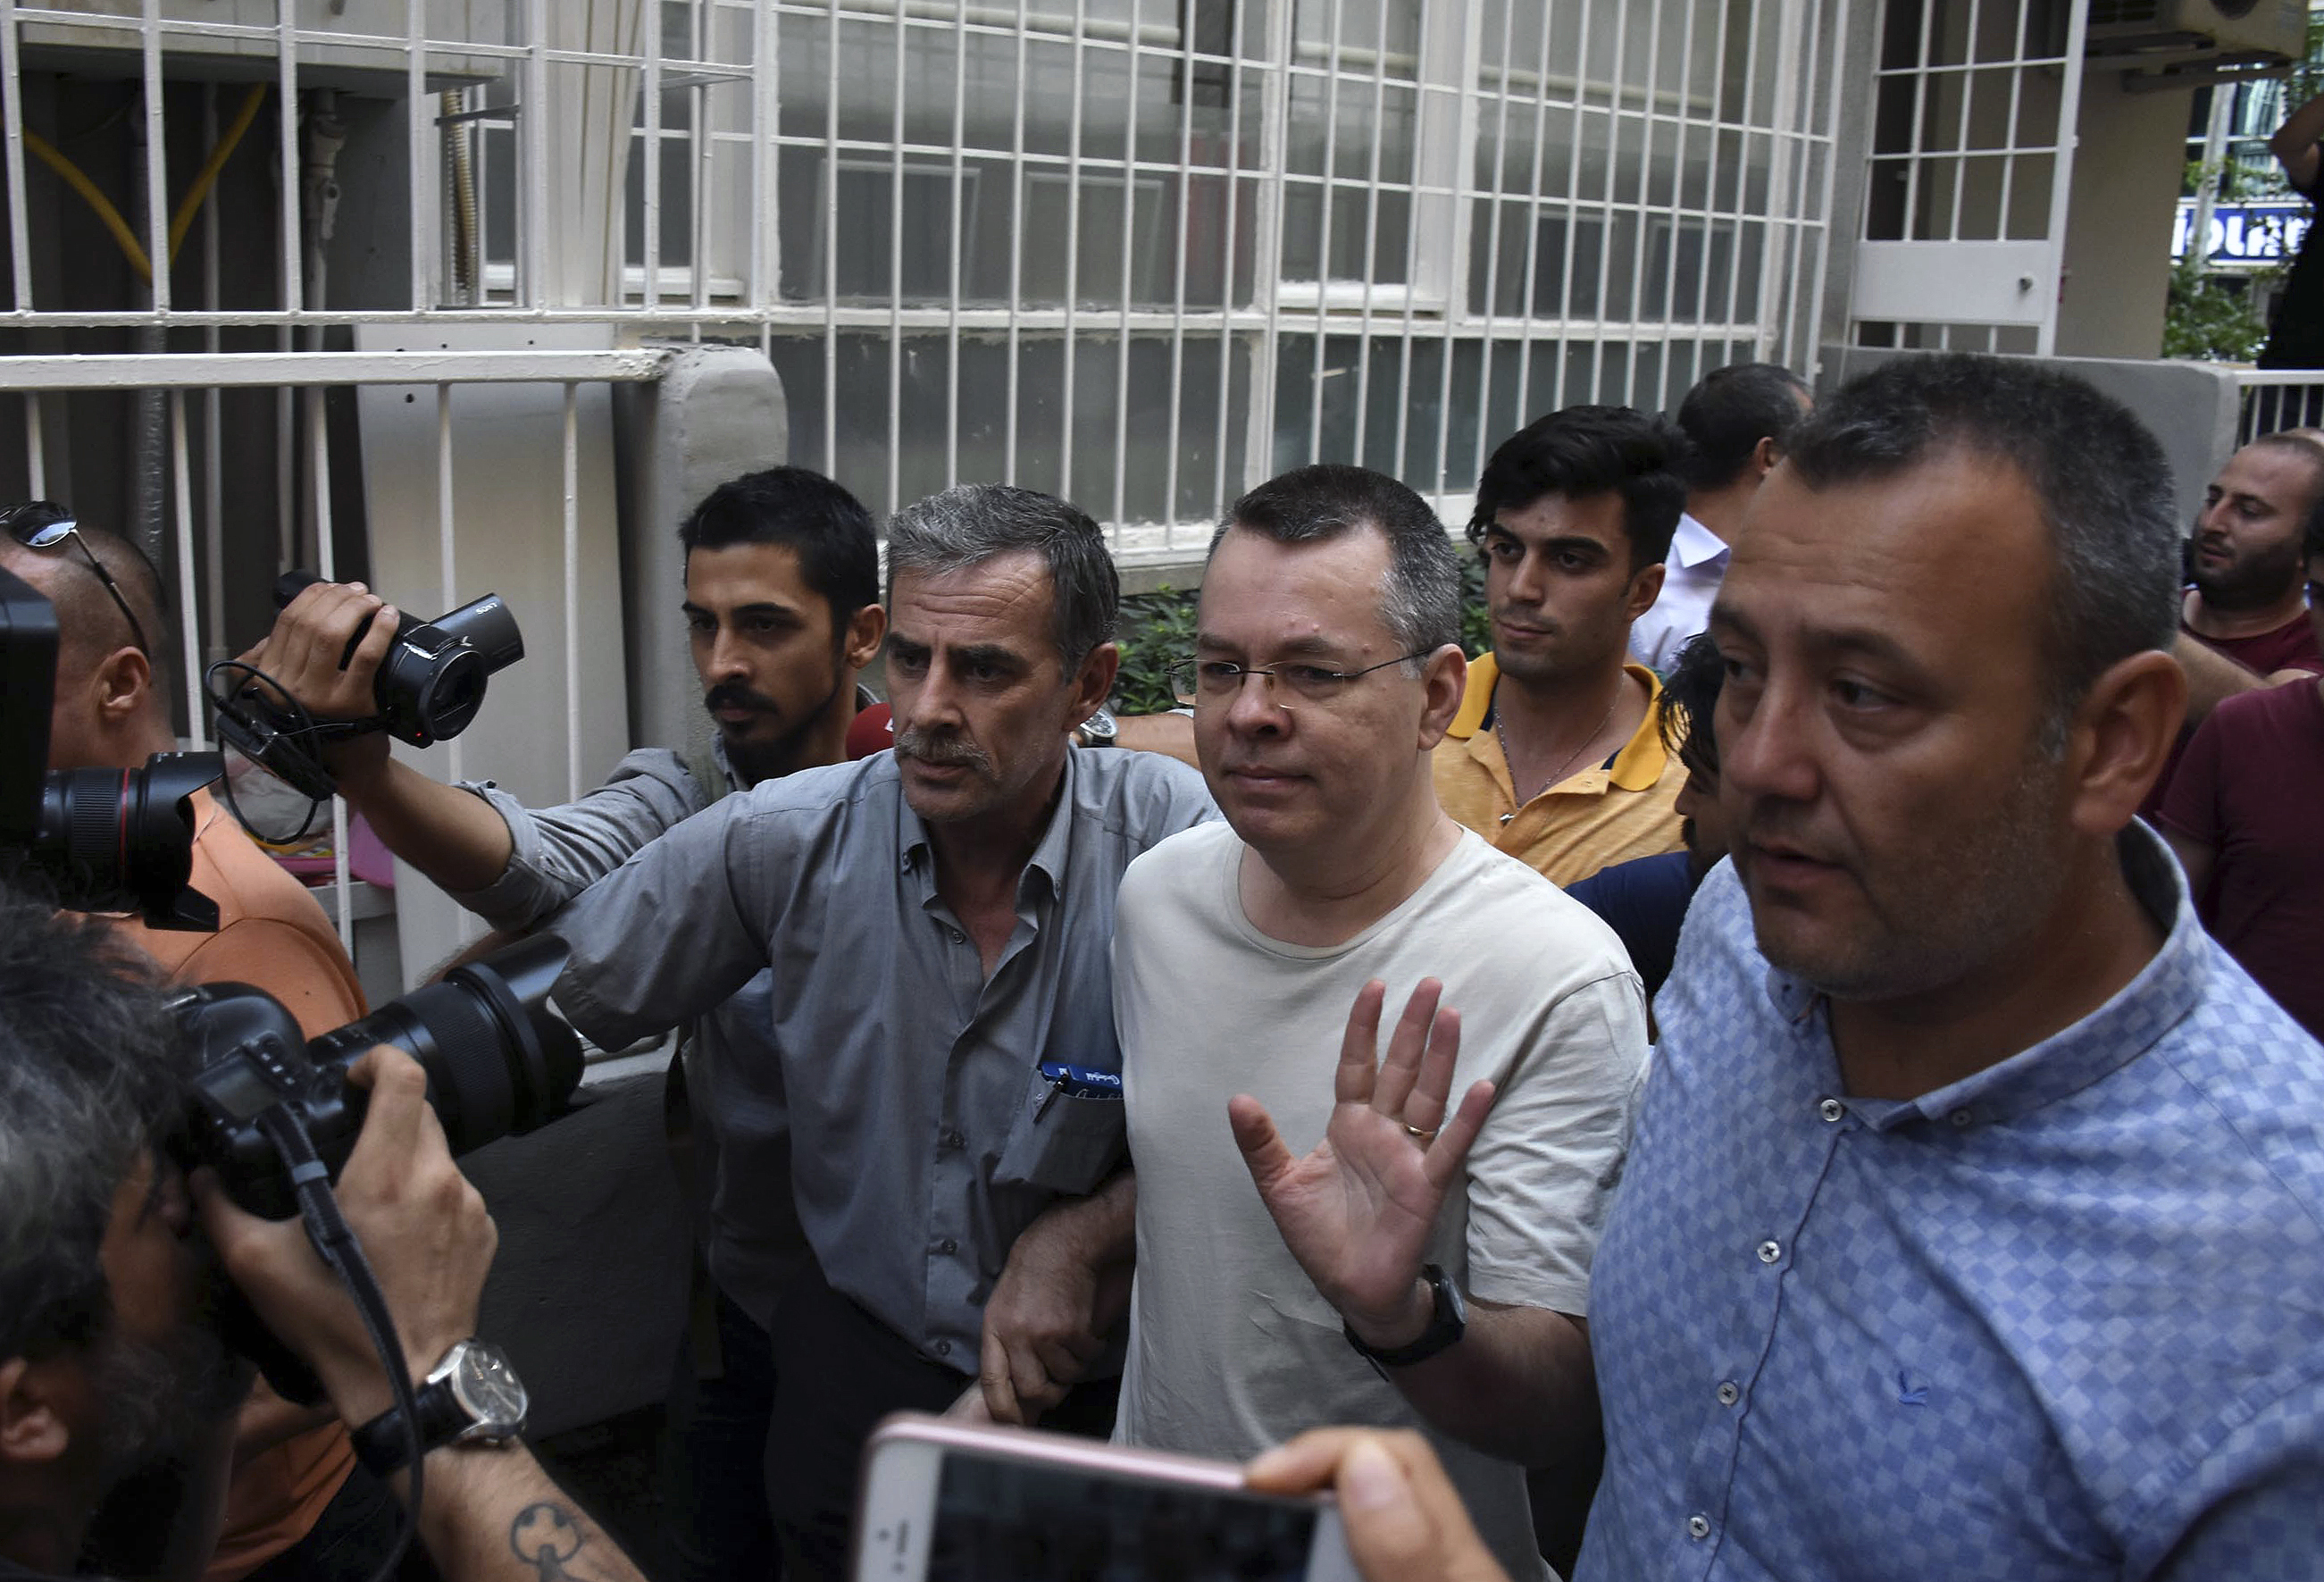 Turkey Says The US Should Reconsider Possible Sanctions Over Detained Pastor